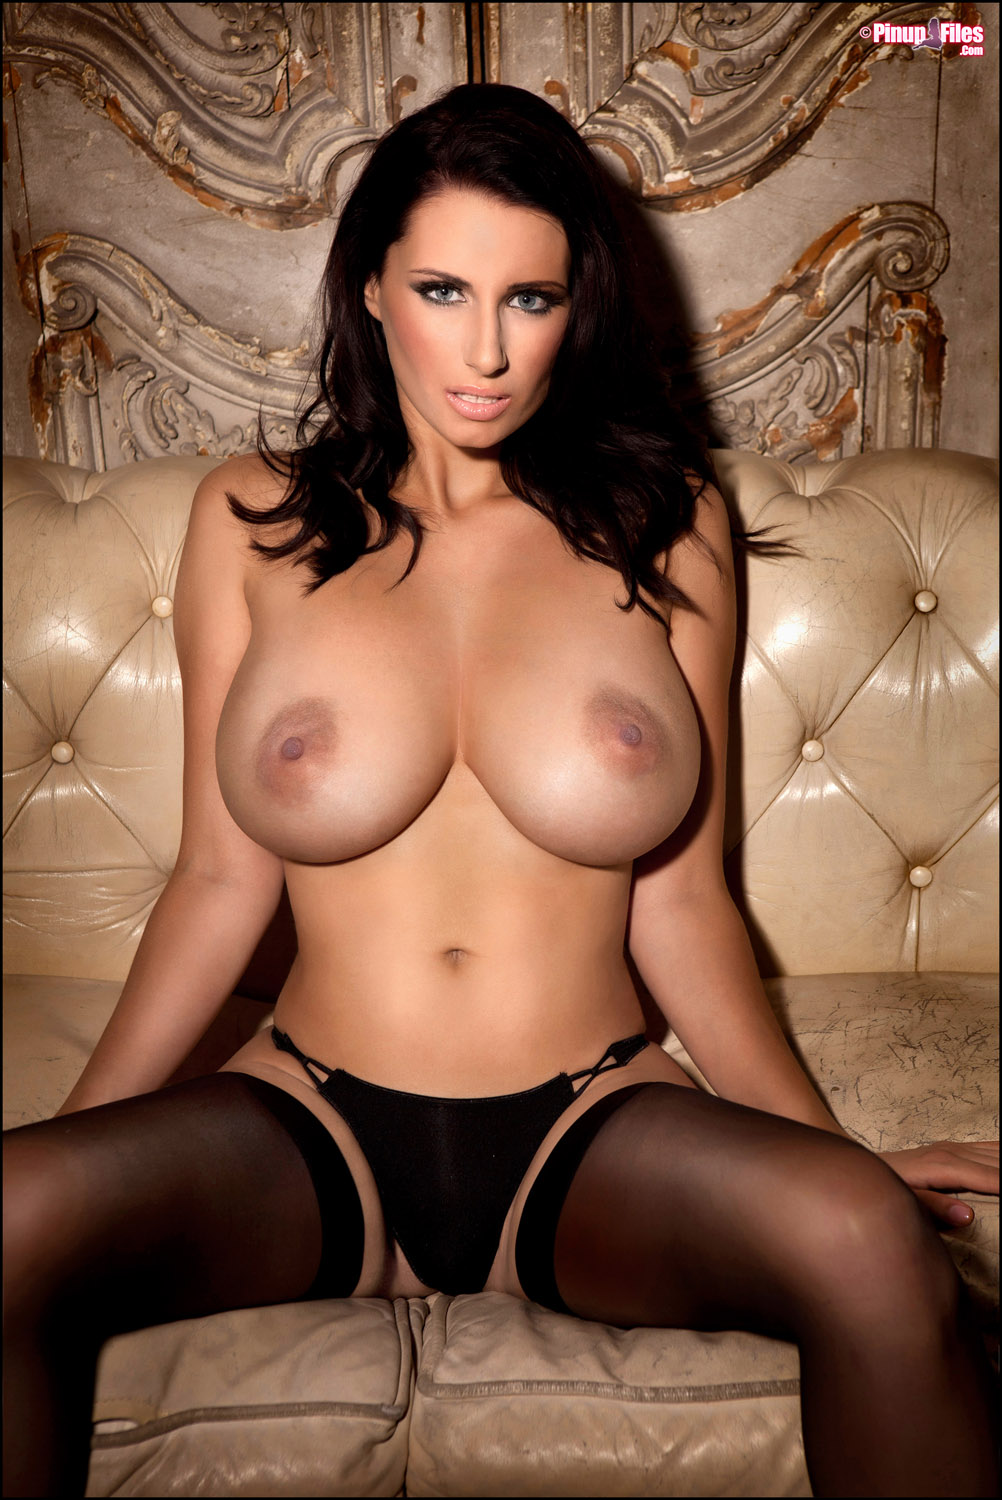 Sammy braddy posing free videos watch download